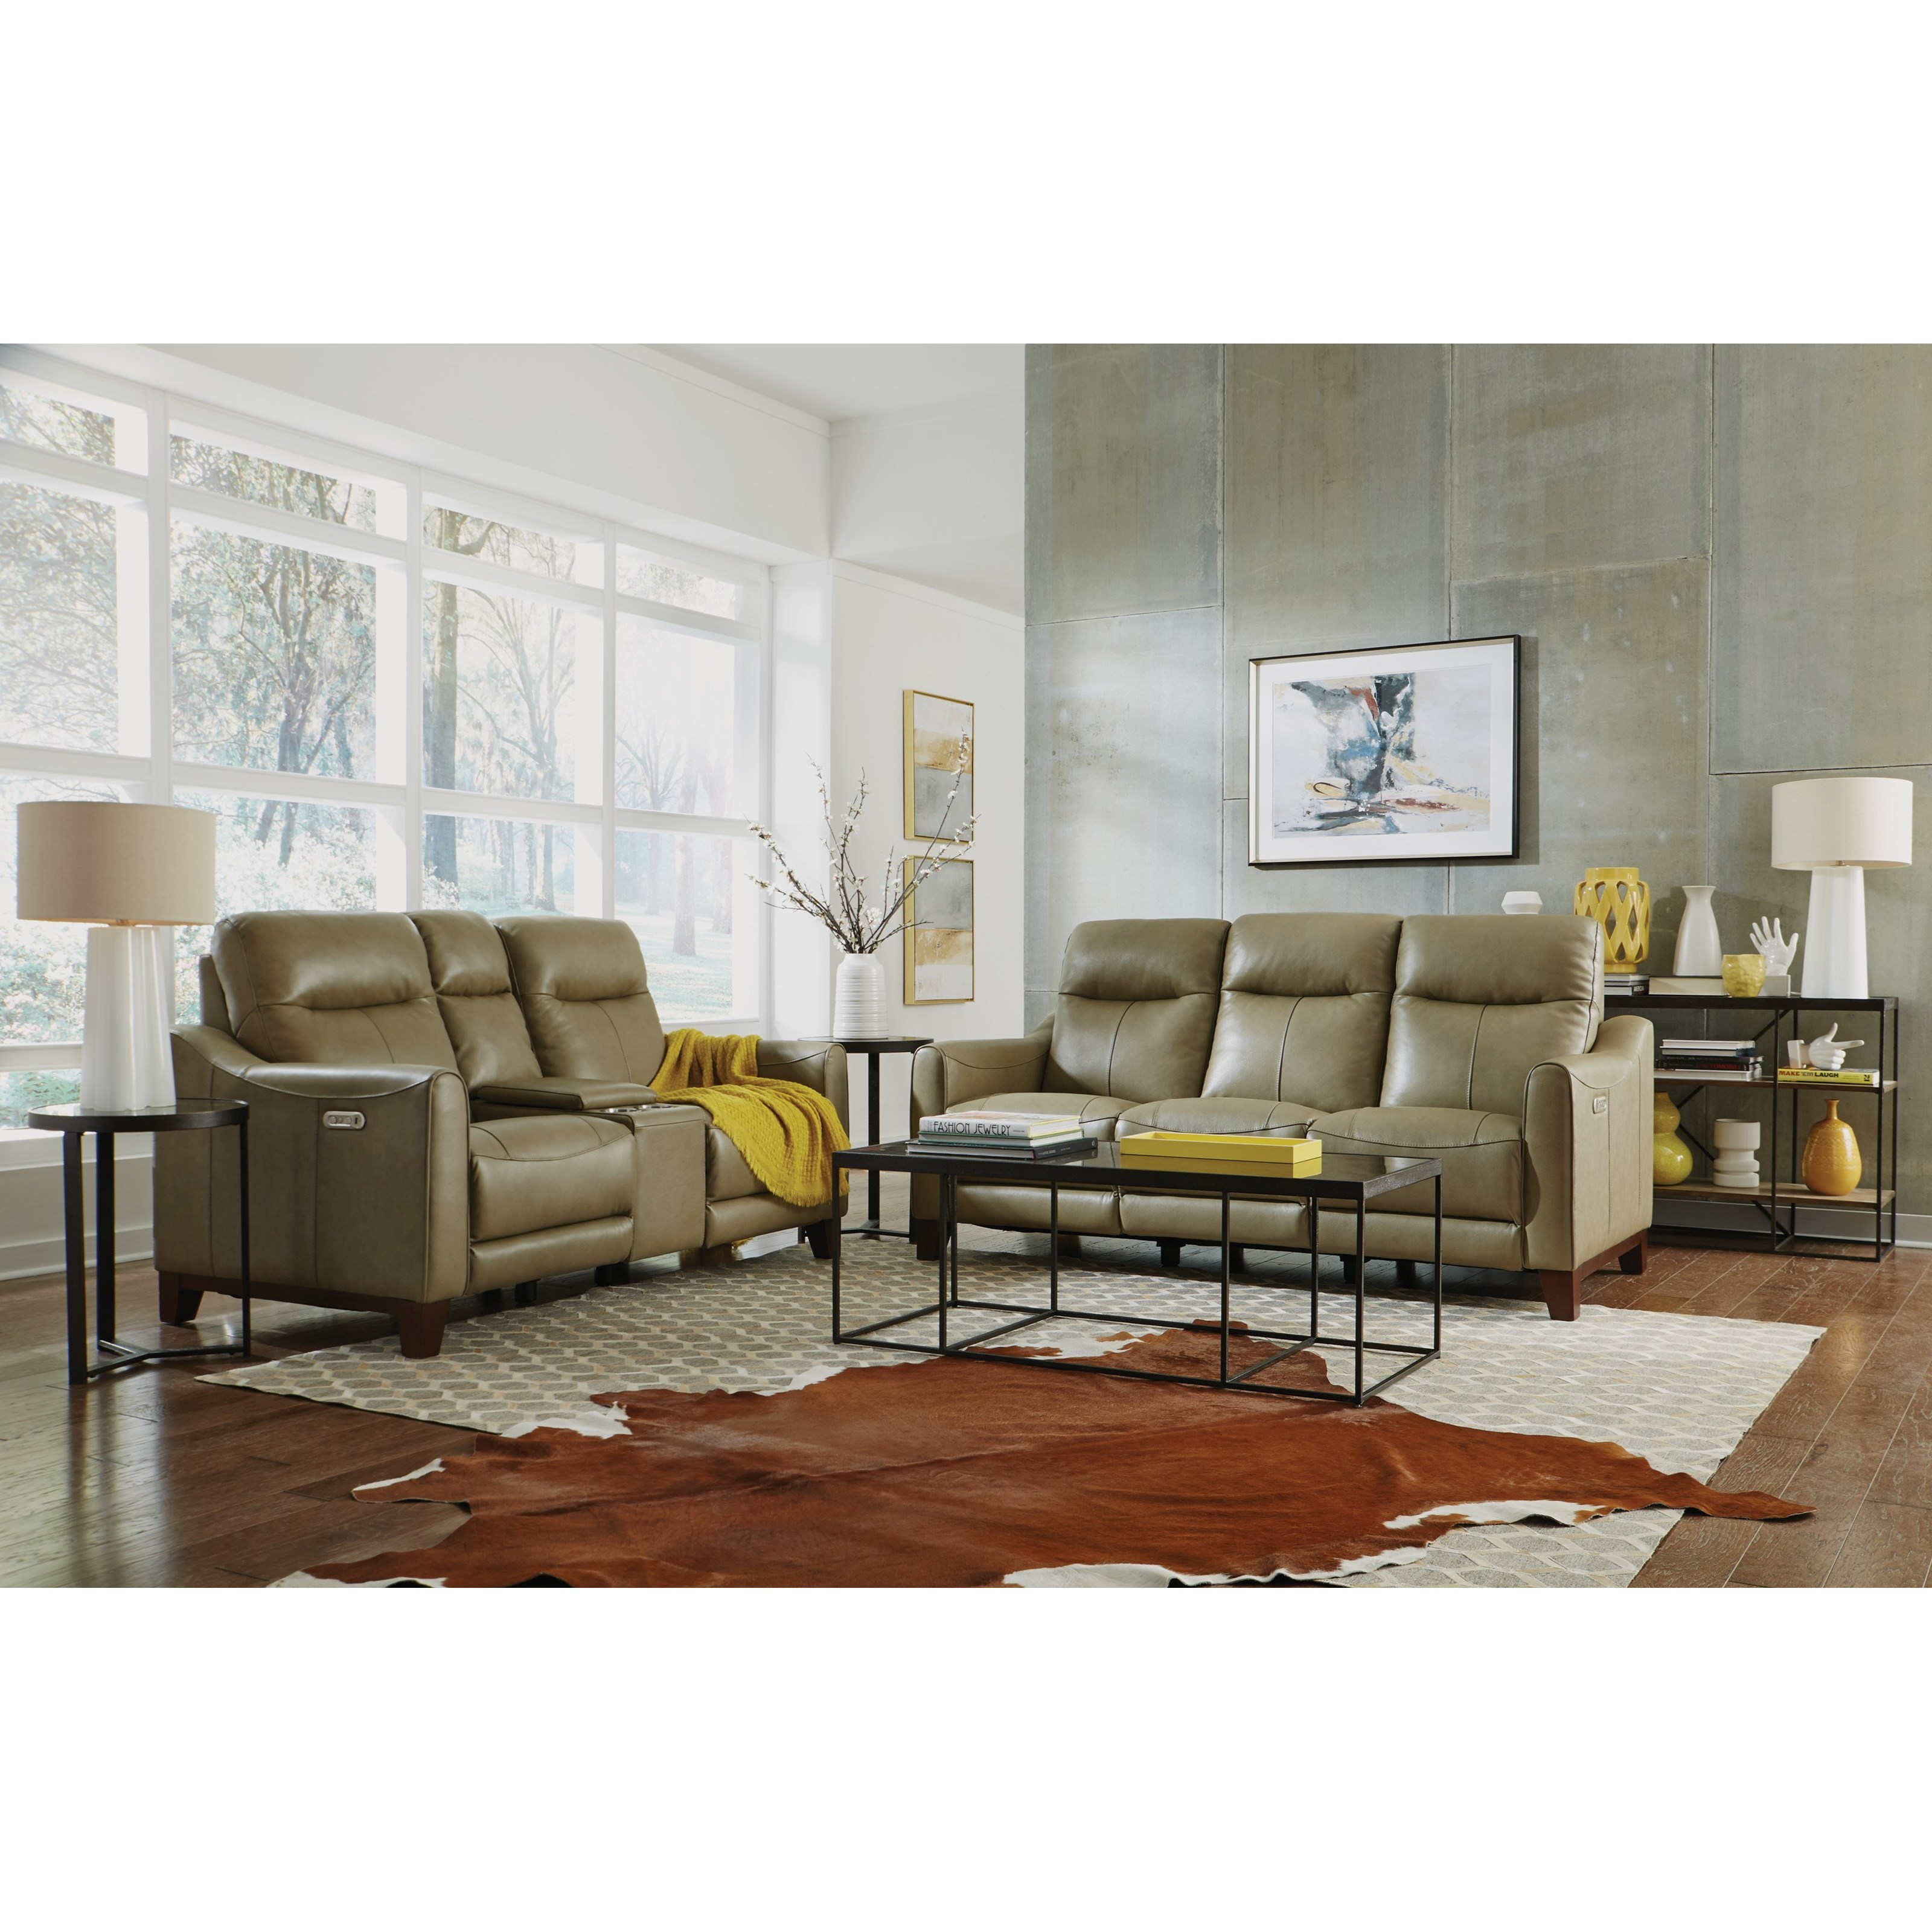 Latitudes - Forte Power Reclining Living Room Group by Flexsteel at Home Collections Furniture